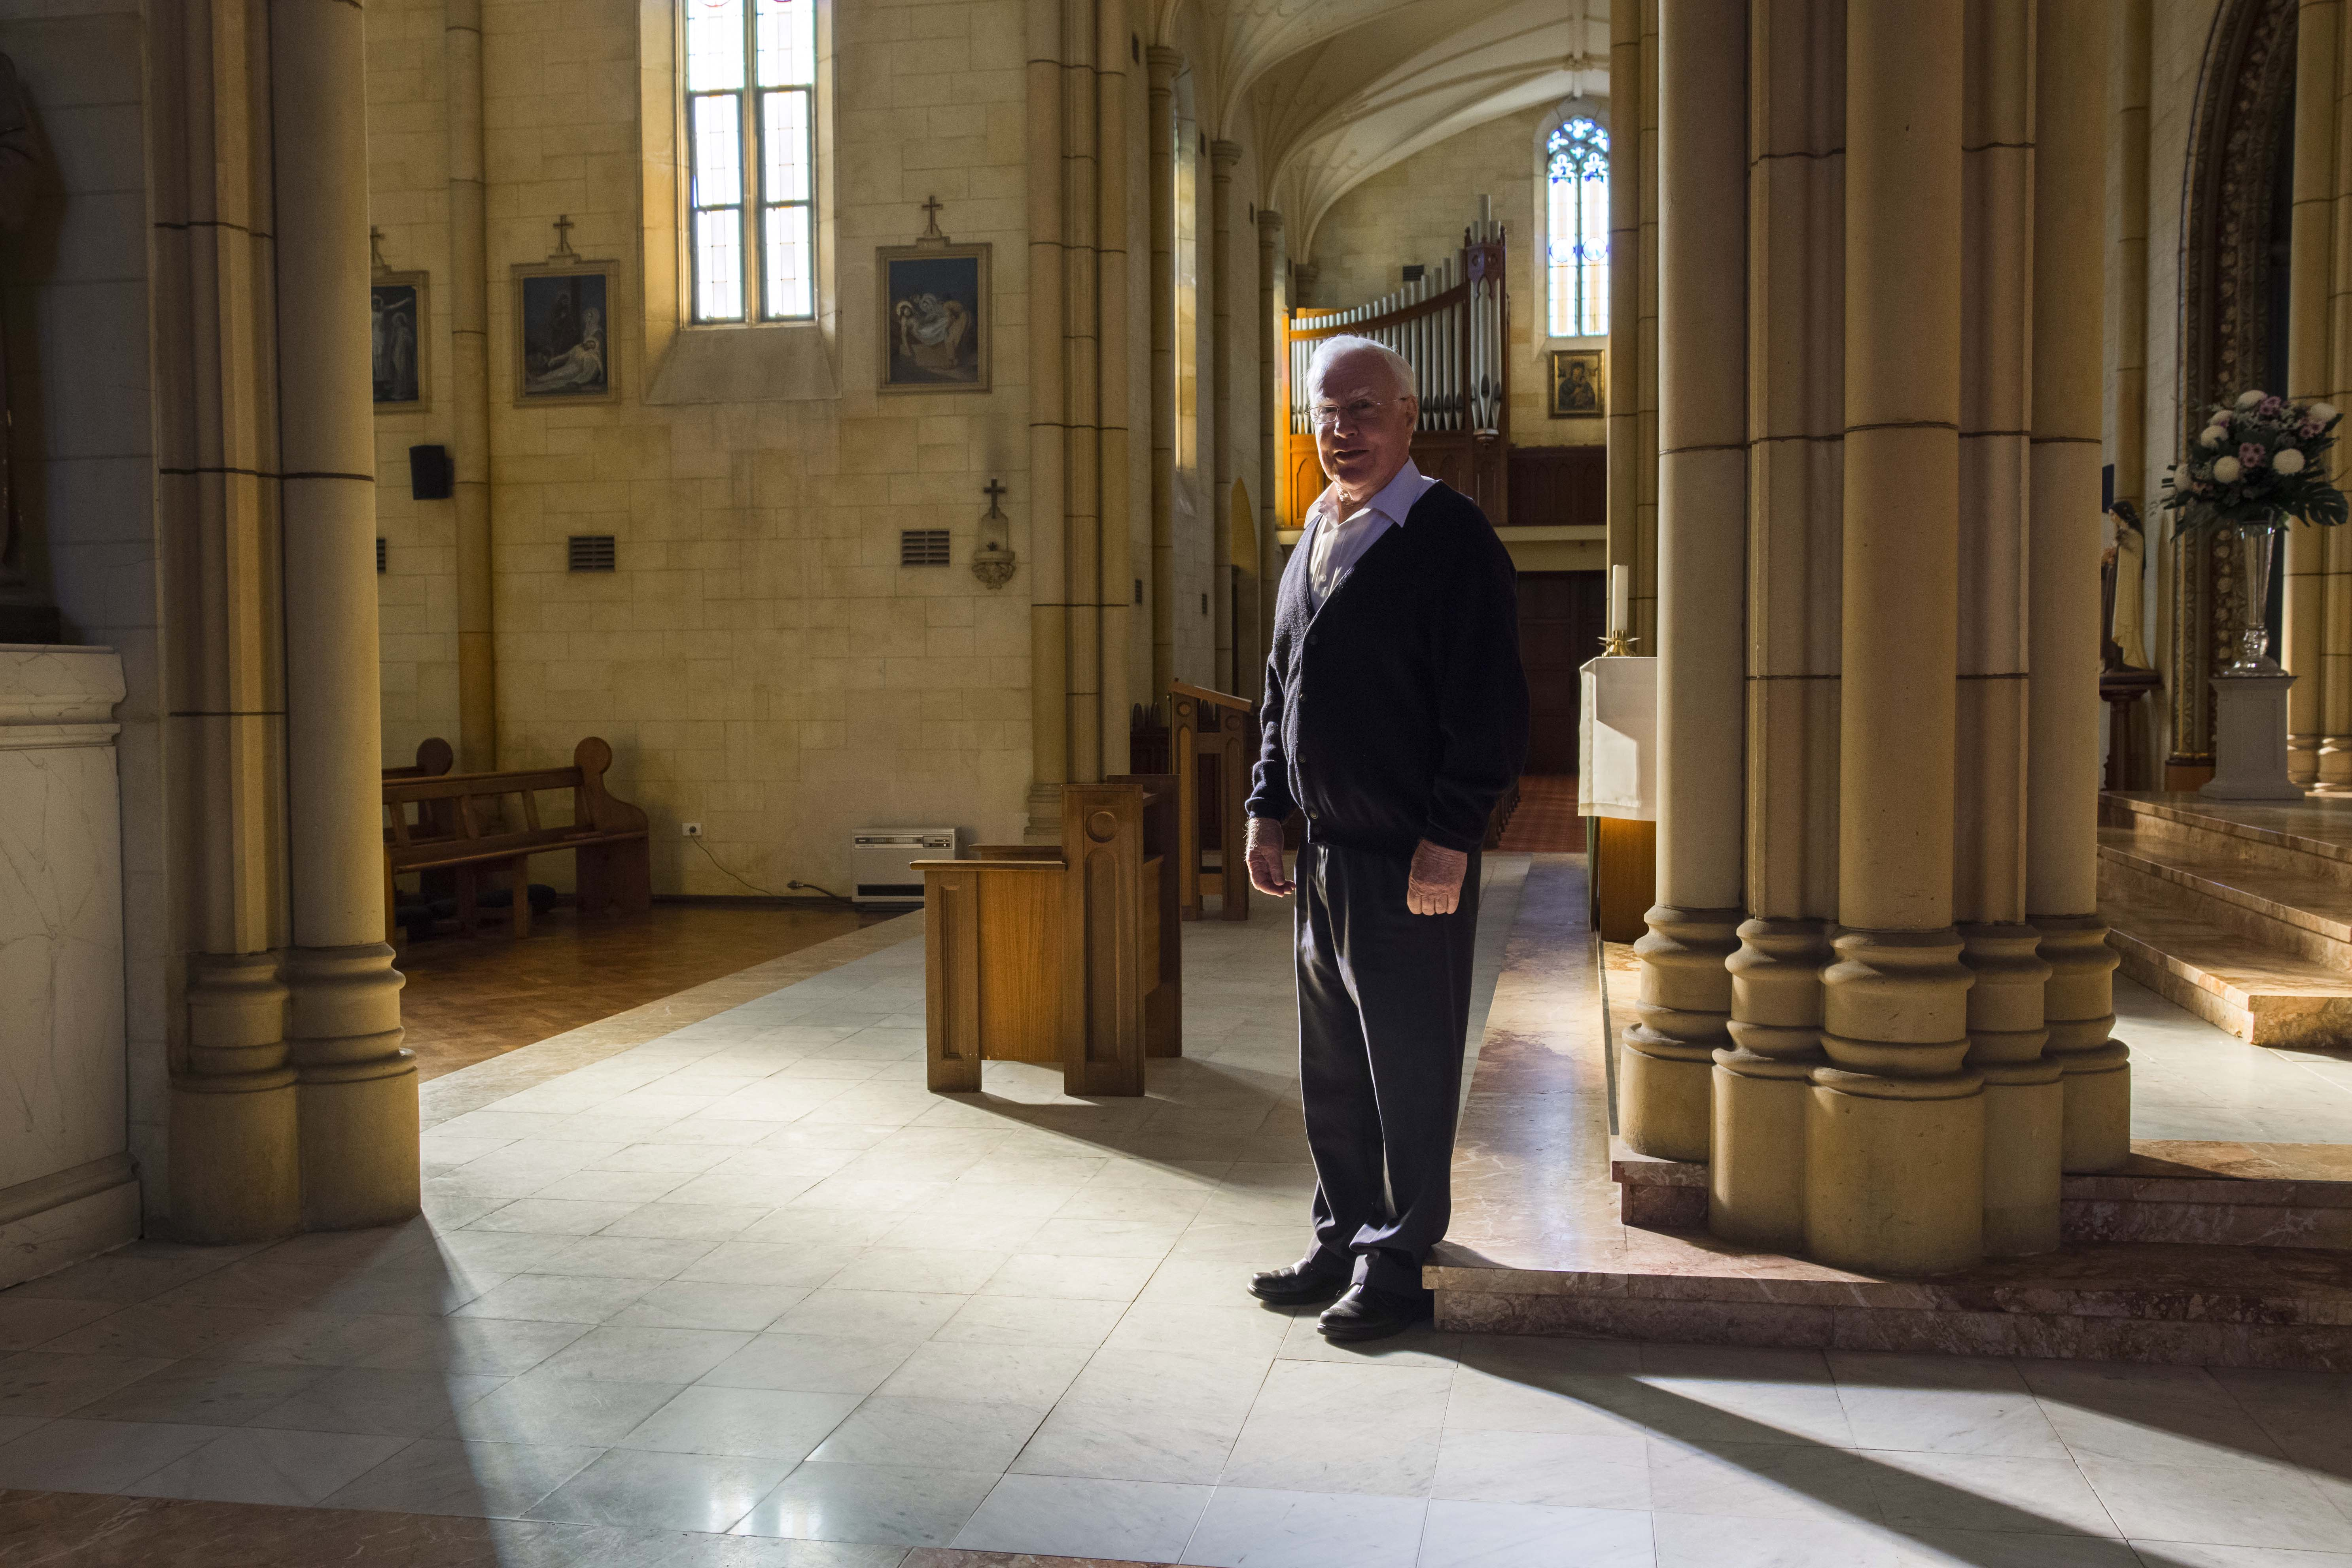 Fr Vincent Conroy at St Michael the Archangel Chapel, where he celebrated his 50th anniversary of ordination. Photo: Caroline Smith.